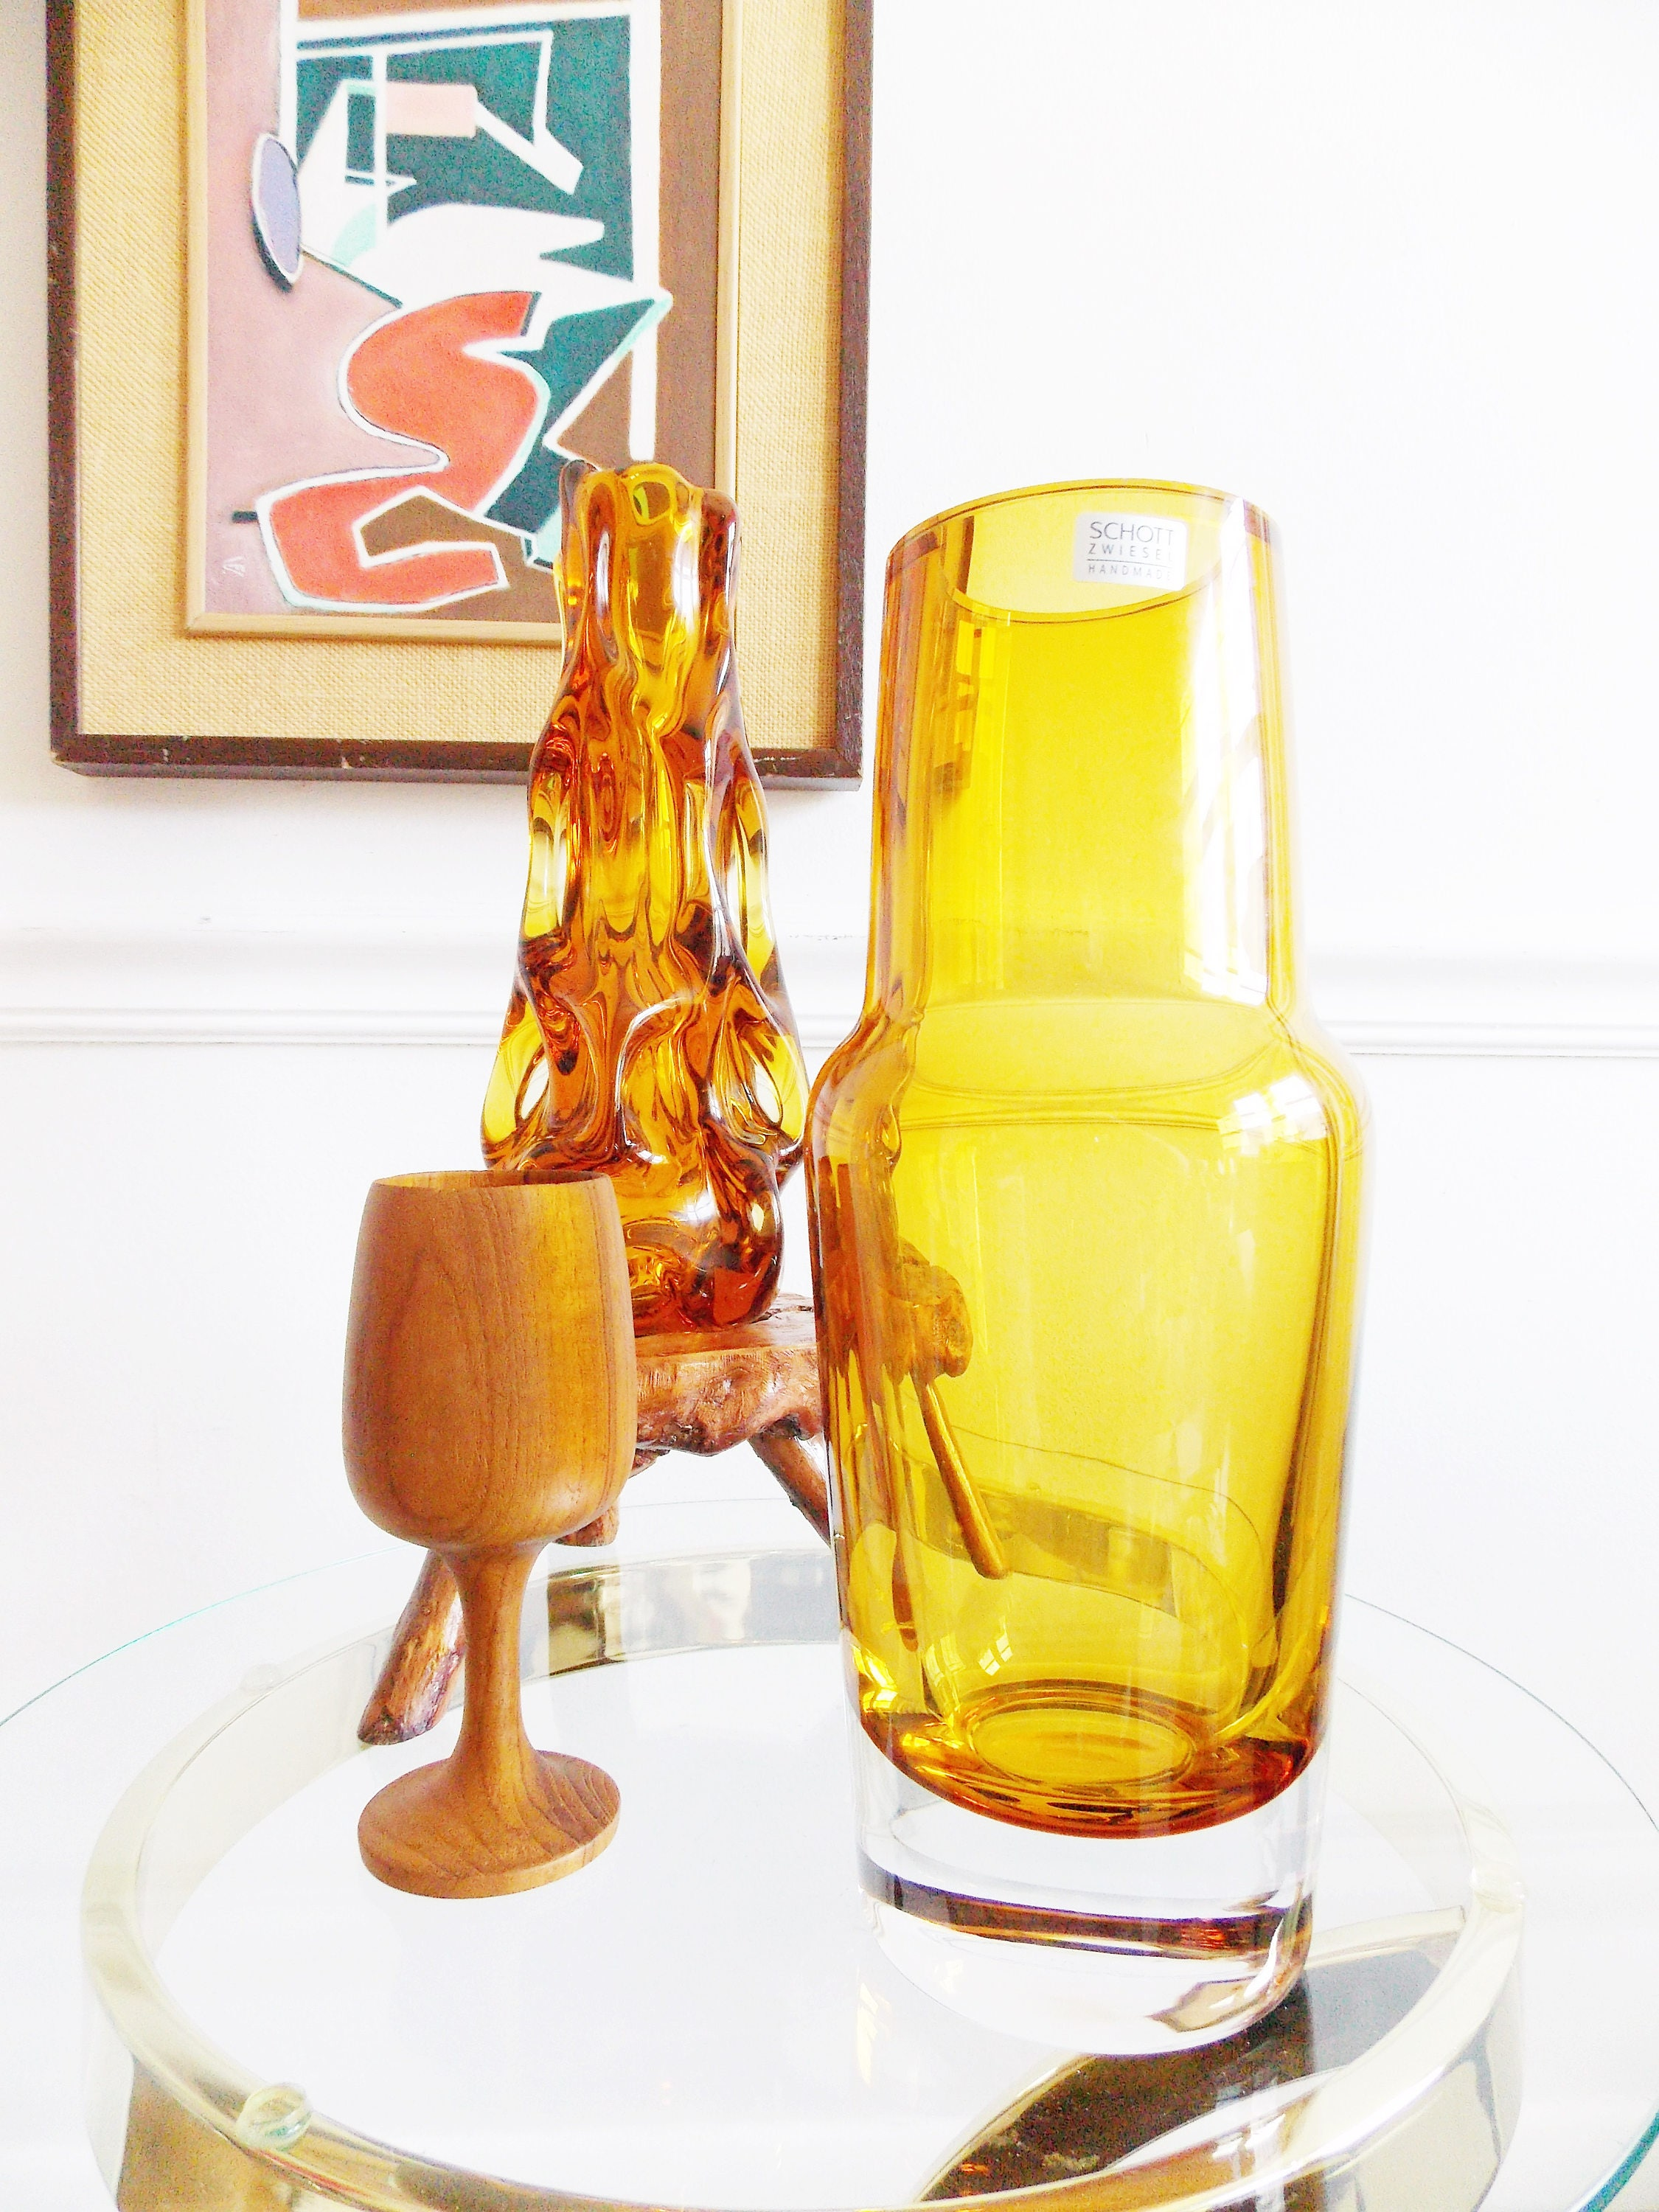 Modernist Schott Zwiesel gl vase/ Contemporary art gl vase ... on